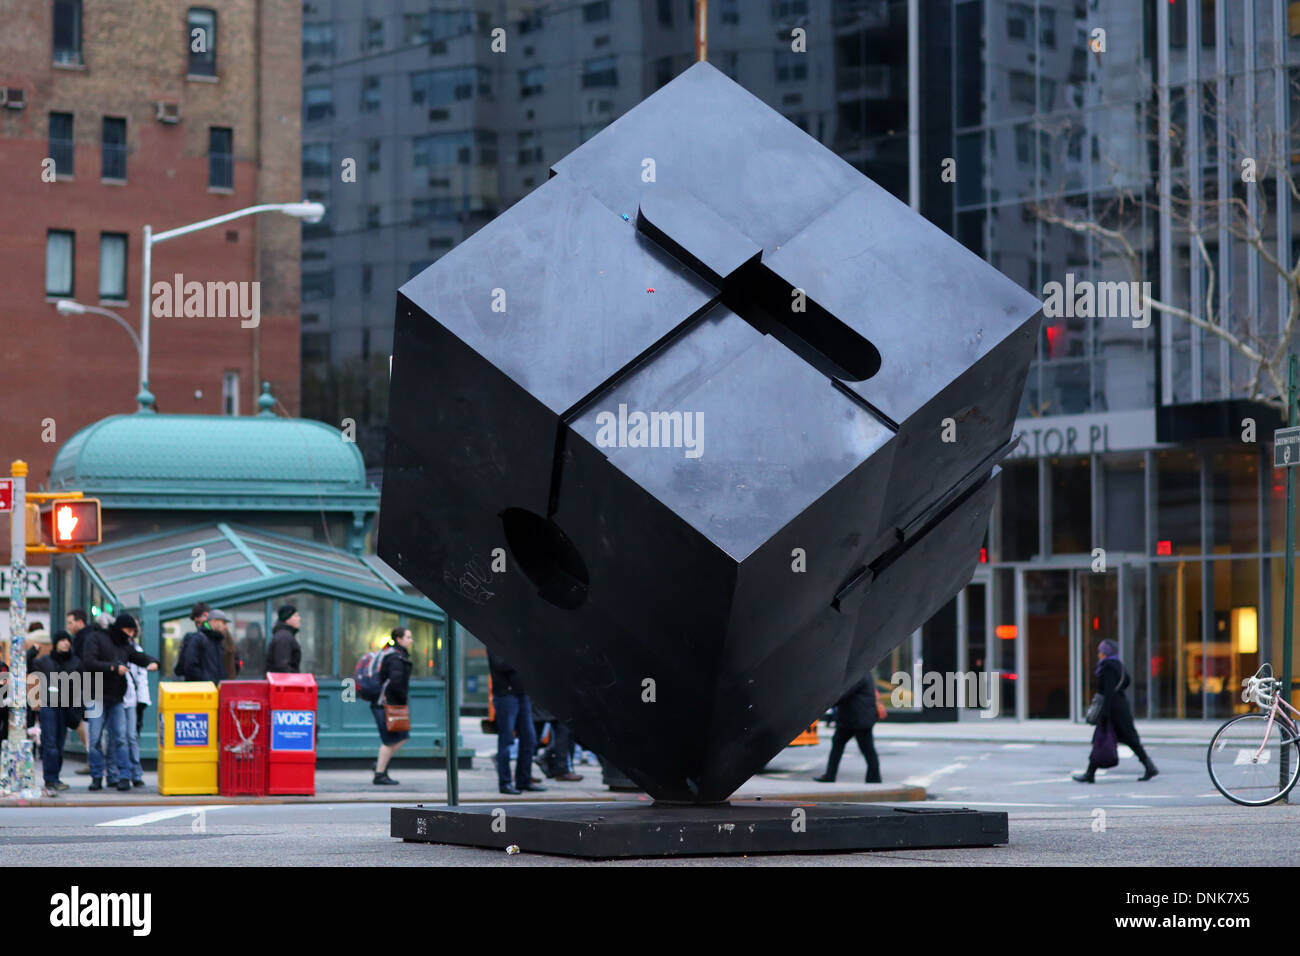 The Alamo, Cube sculpture in Astor Place, NYC. - Stock Image